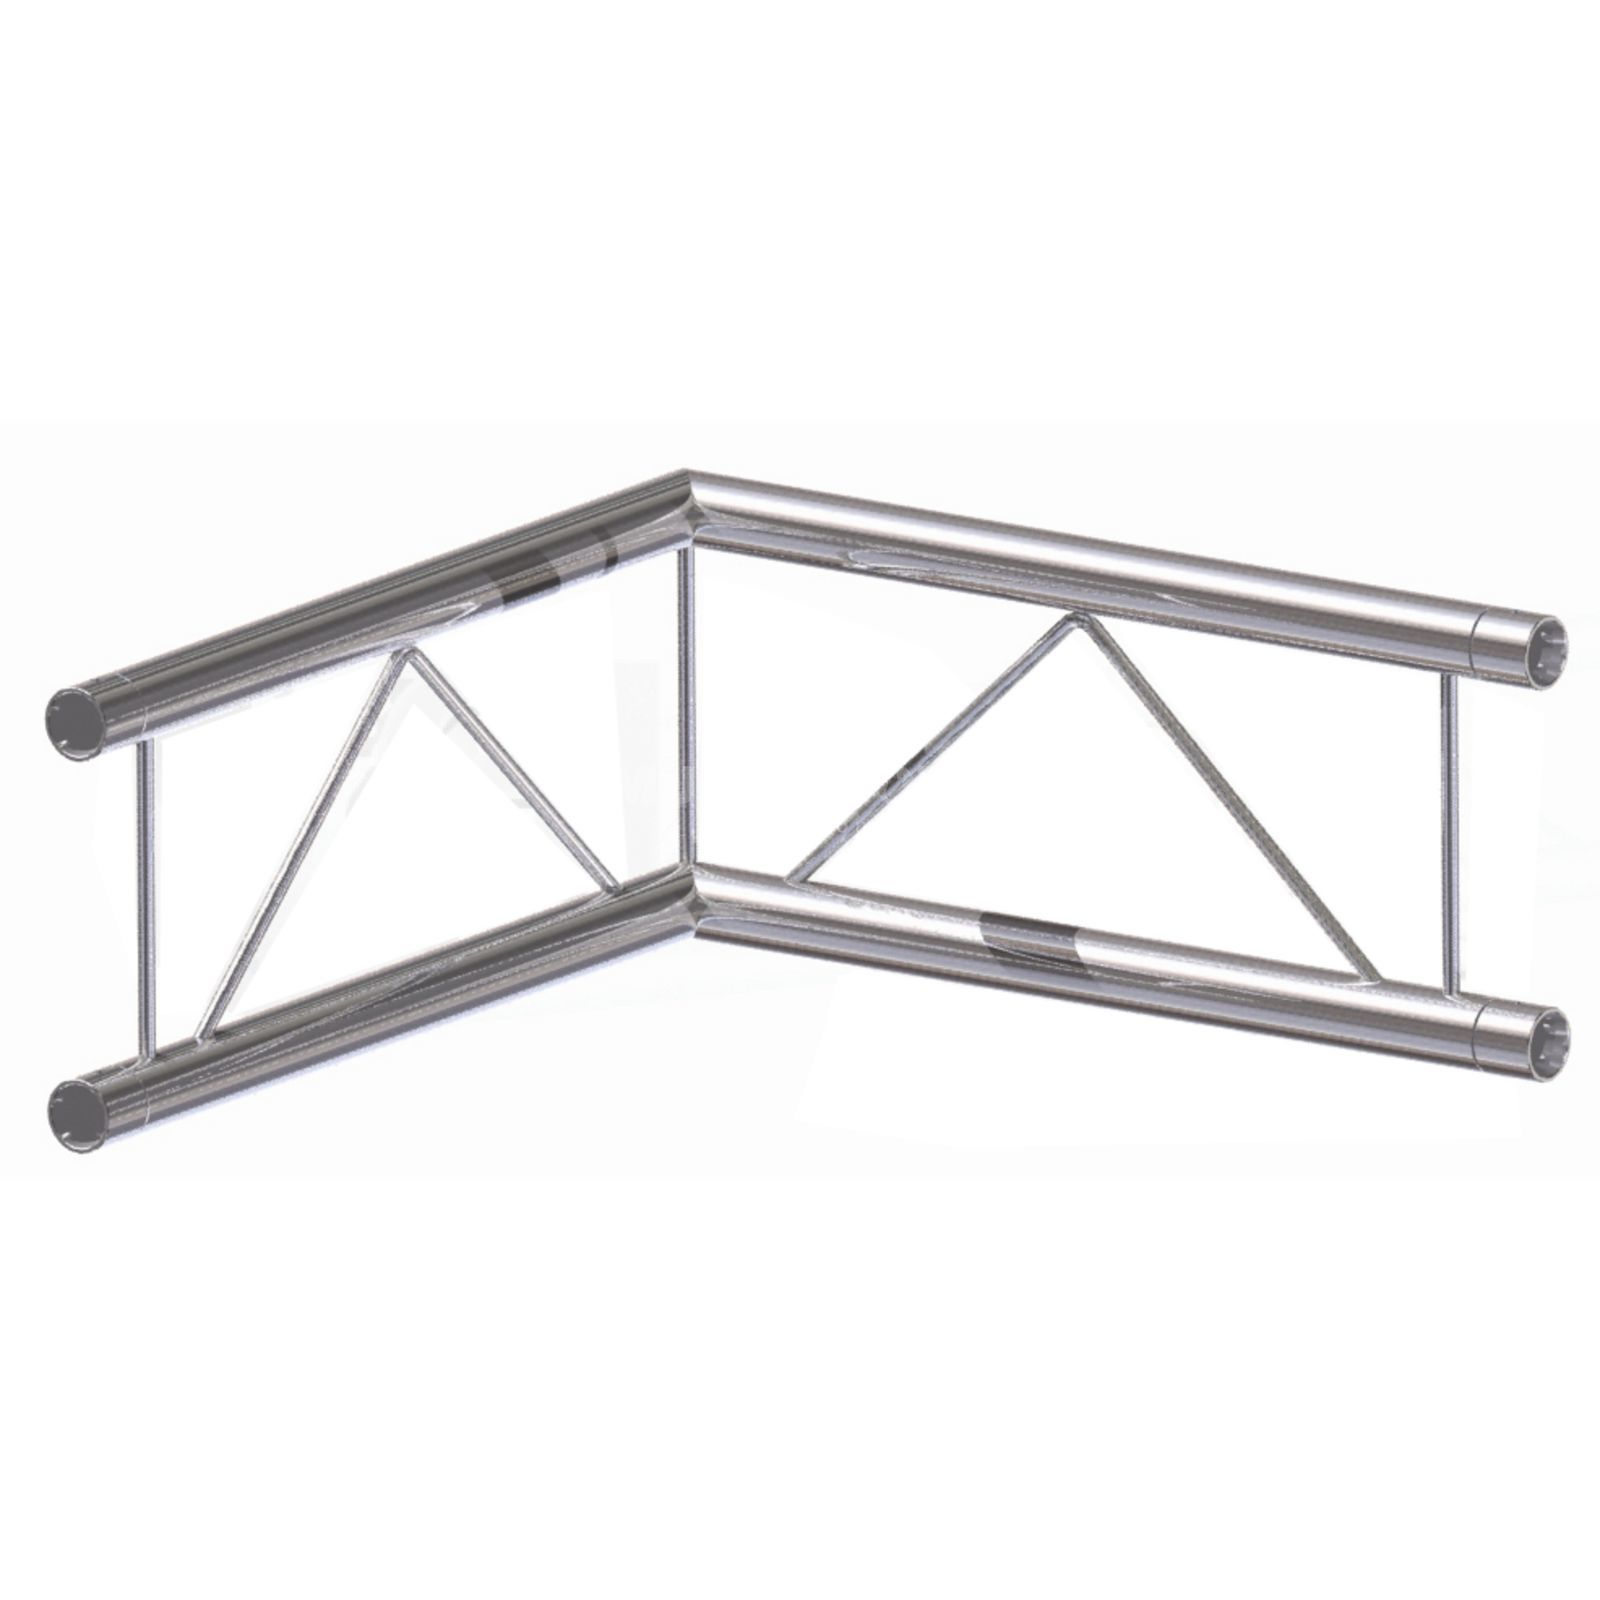 Global Truss F22 2-Way Corner C 21 V 90°  Produktbillede